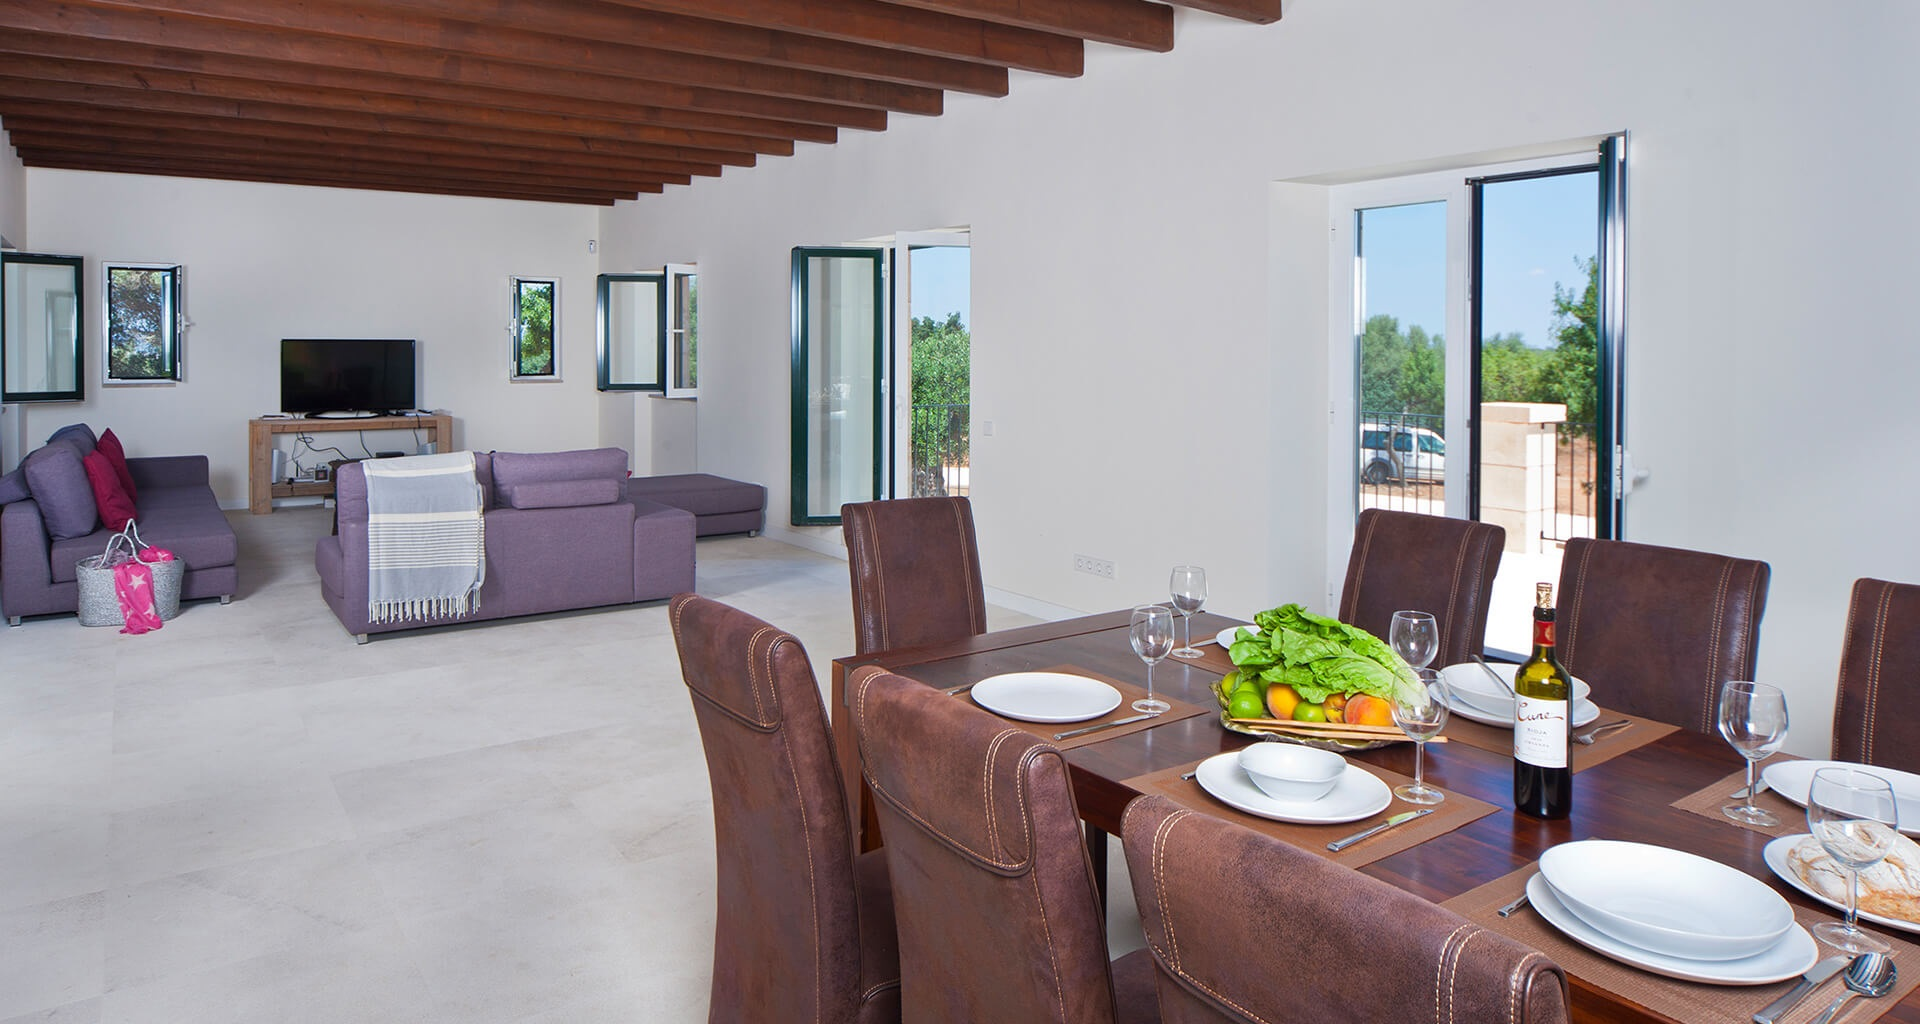 Mallorca Countryside Villa Gallery